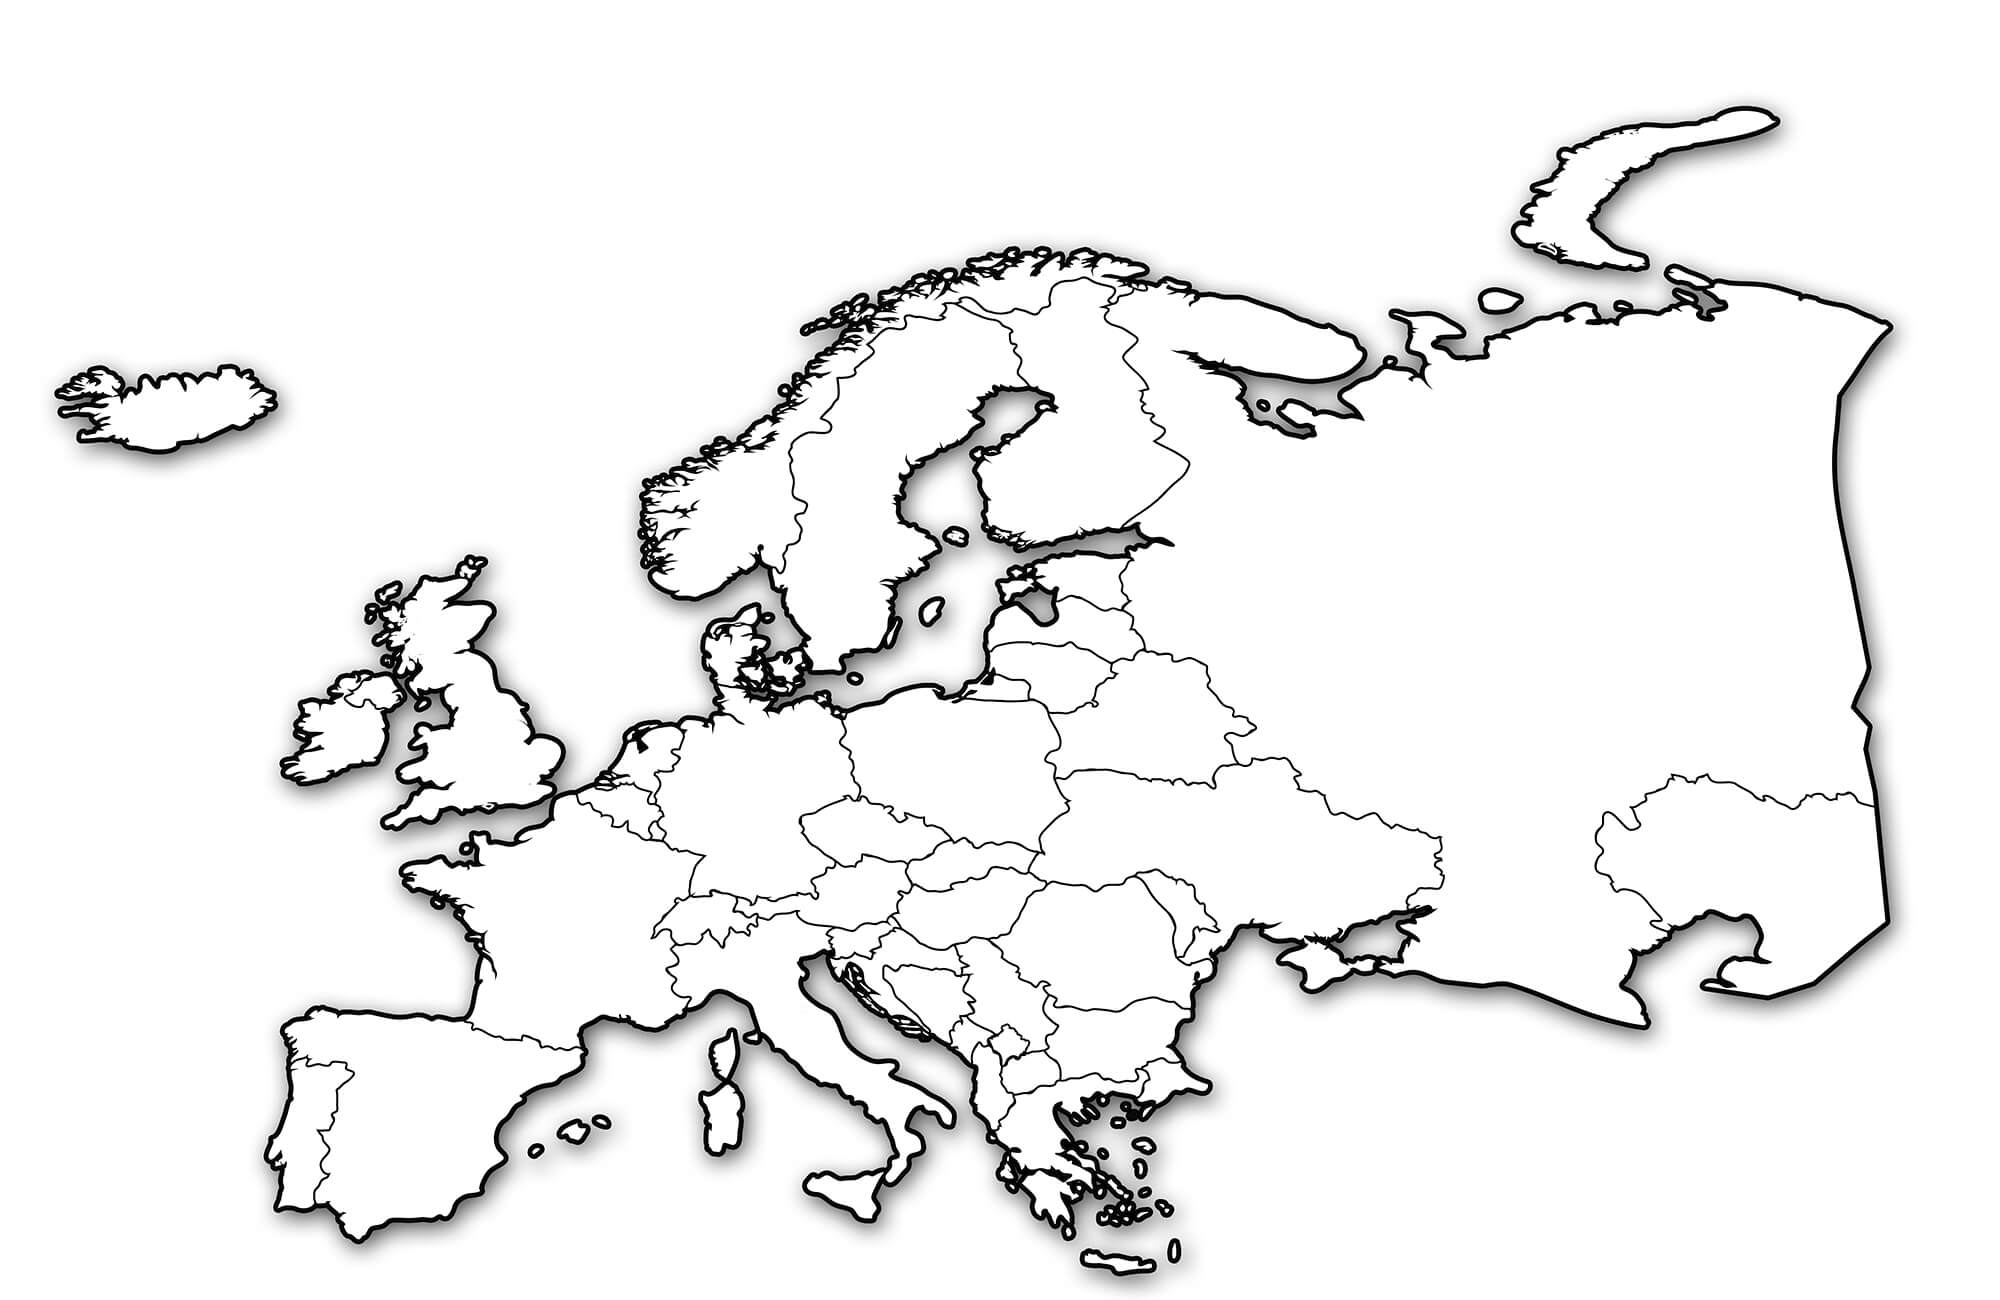 Europe Drawing Map at GetDrawings.com | Free for personal ...